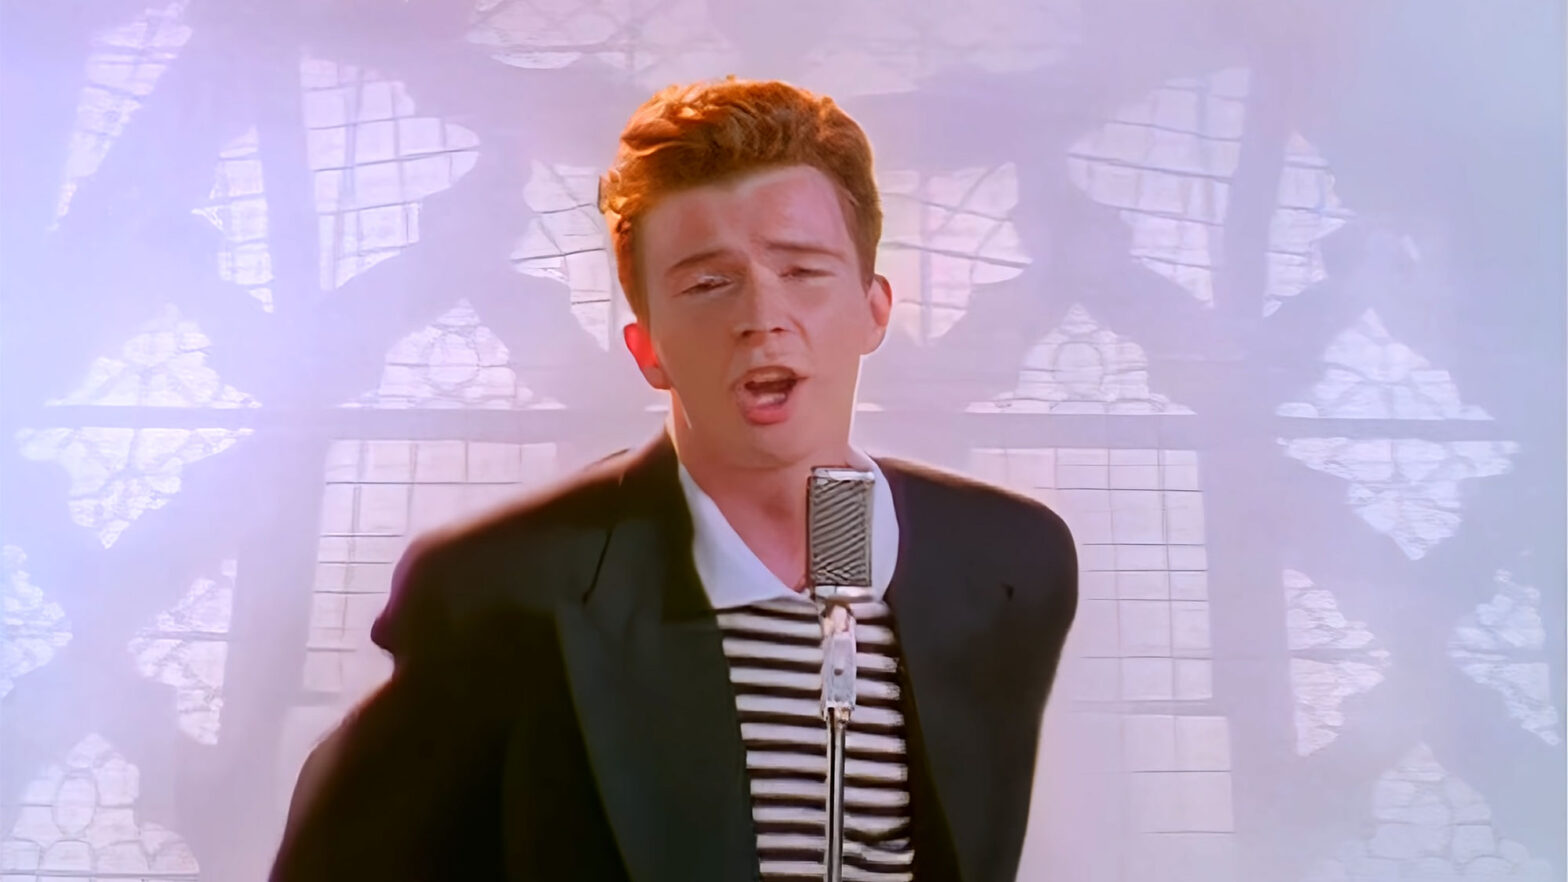 Rick Astley Music Video Remastered in 4K